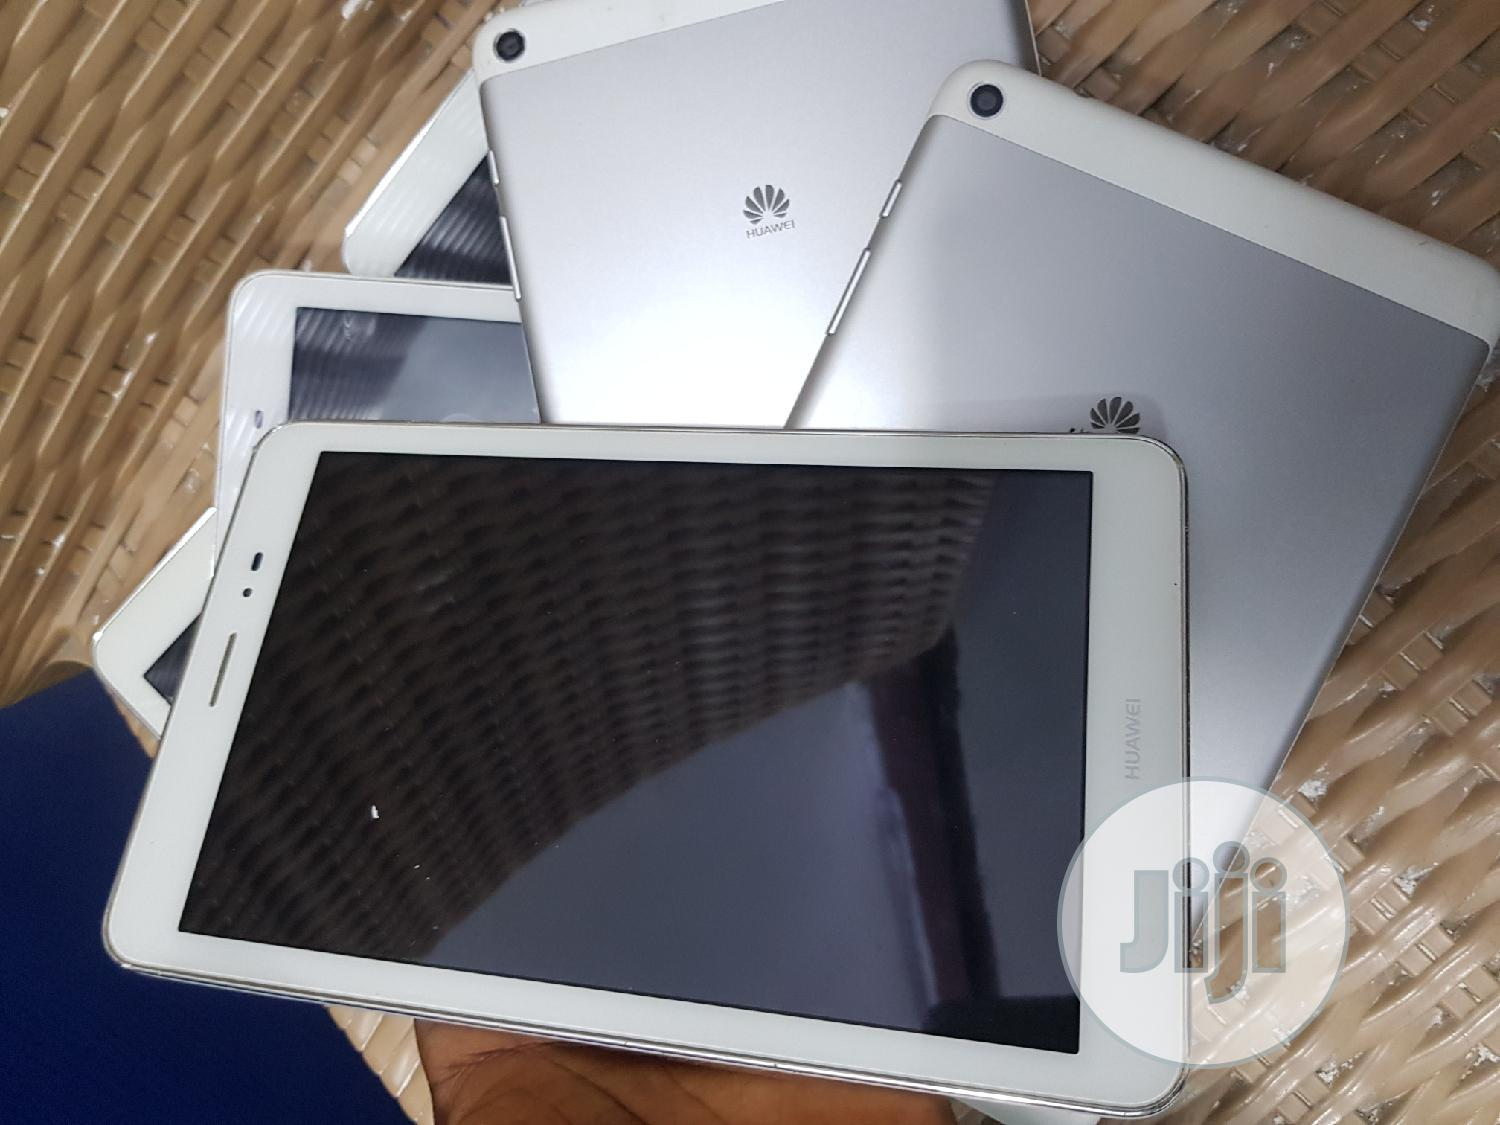 Huawei MediaPad T1 8.0 16 GB White | Tablets for sale in Ikeja, Lagos State, Nigeria